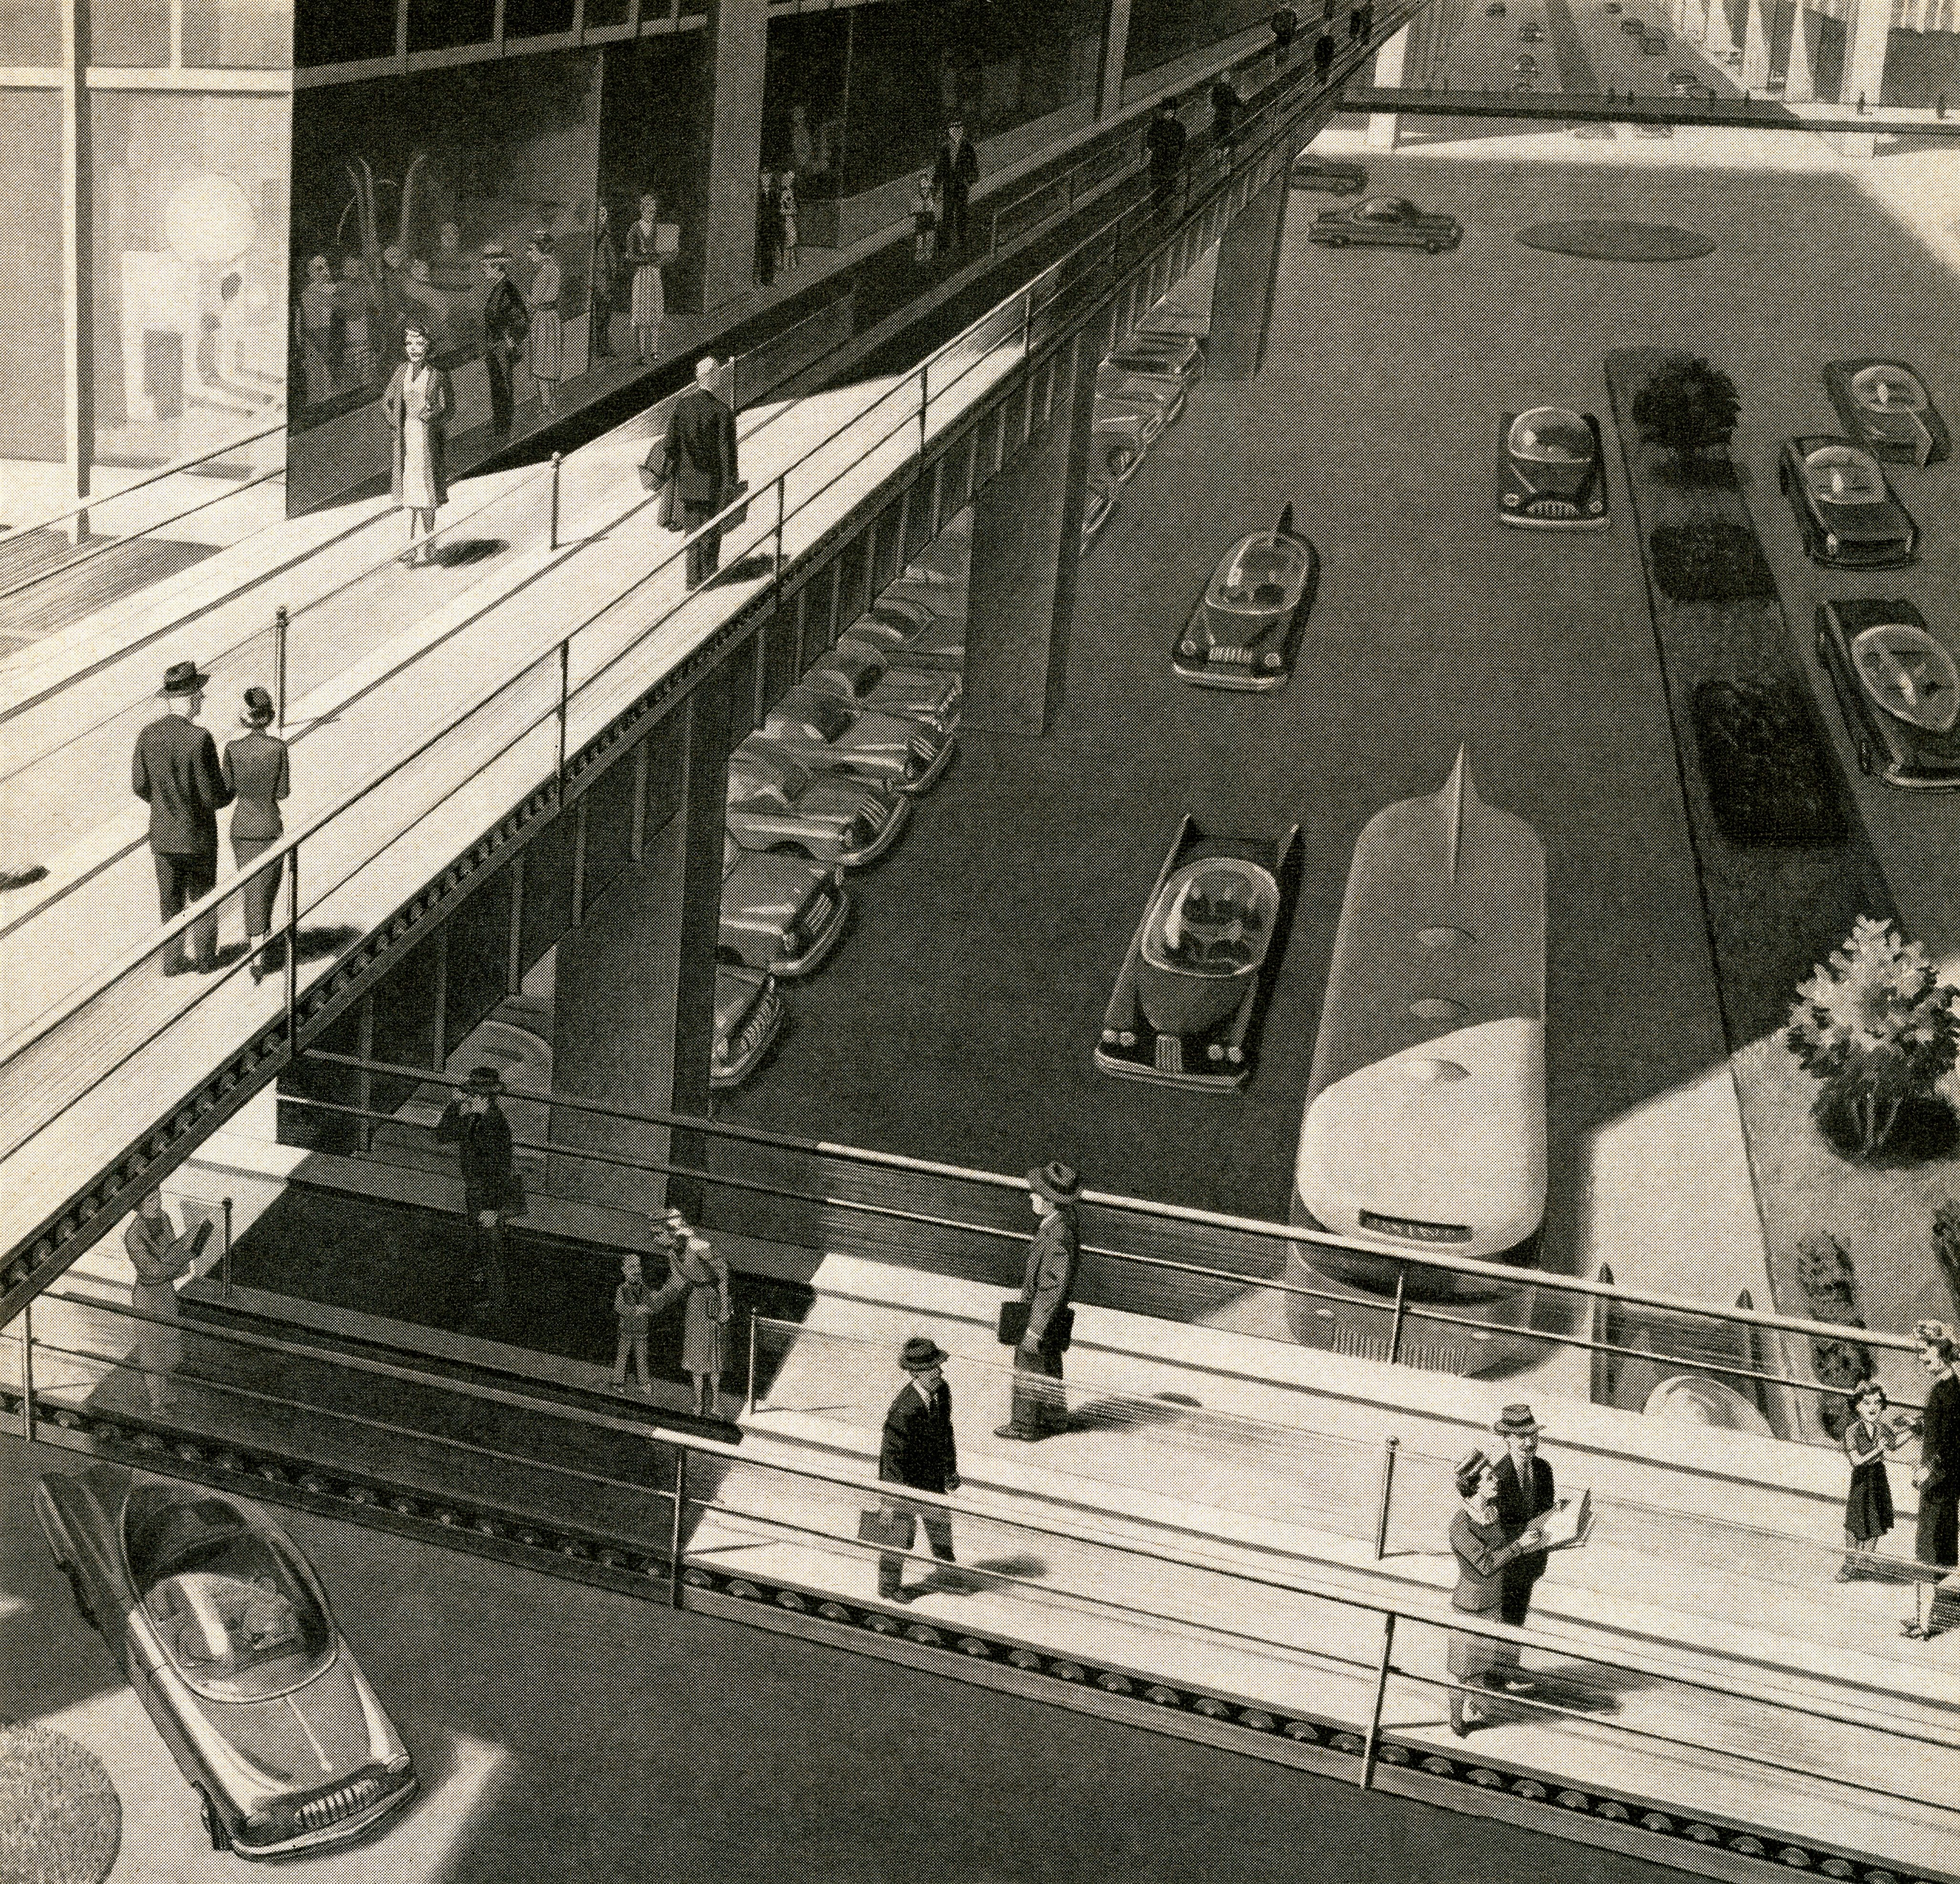 A 1950s screen print shows an unrealized vision of transportation in the future, including automated walkways.